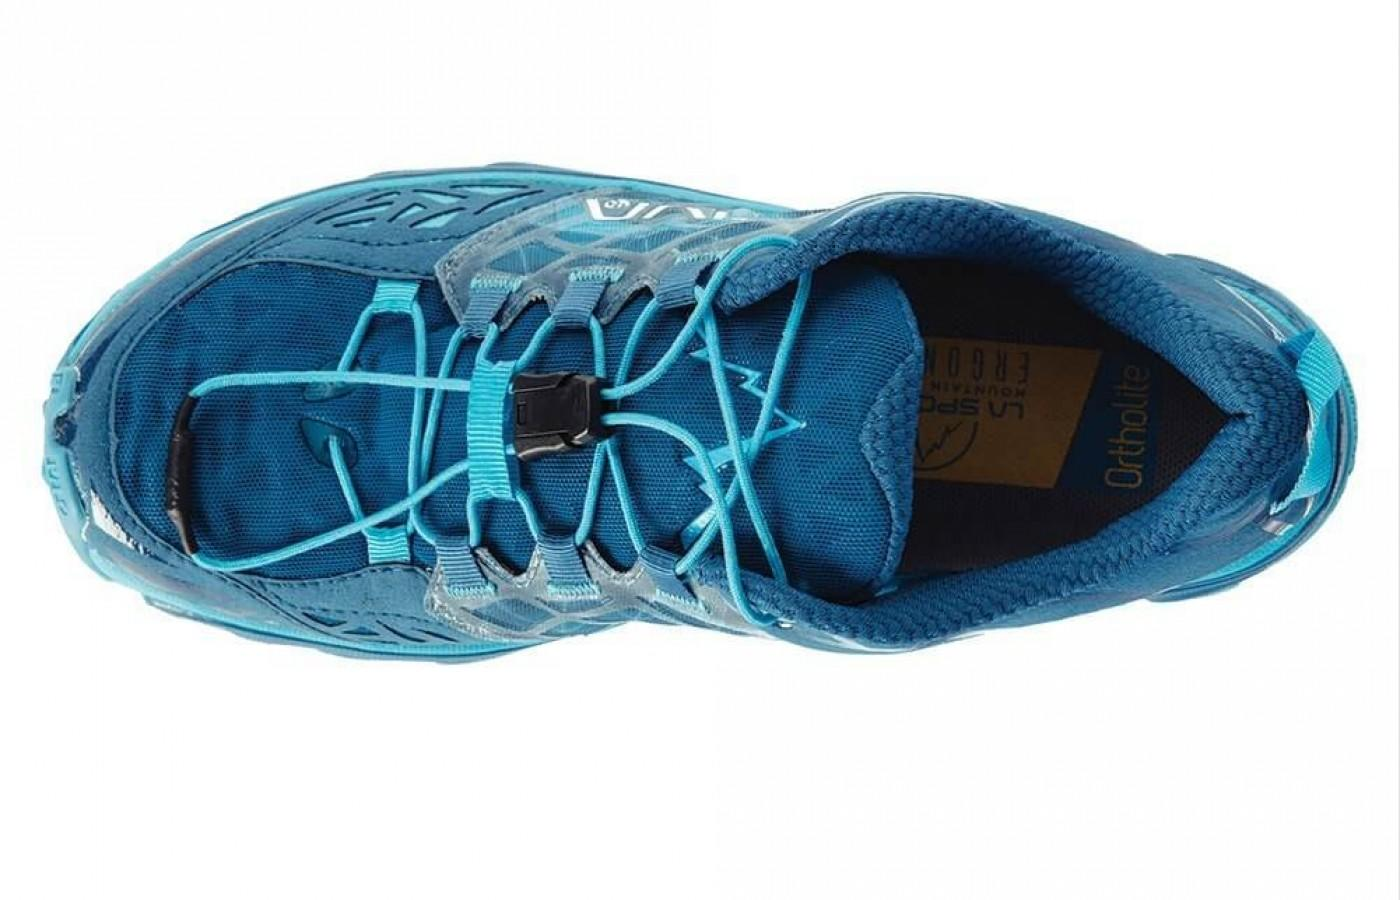 La Sportiva Helios 2.0 features an AirMesh liner